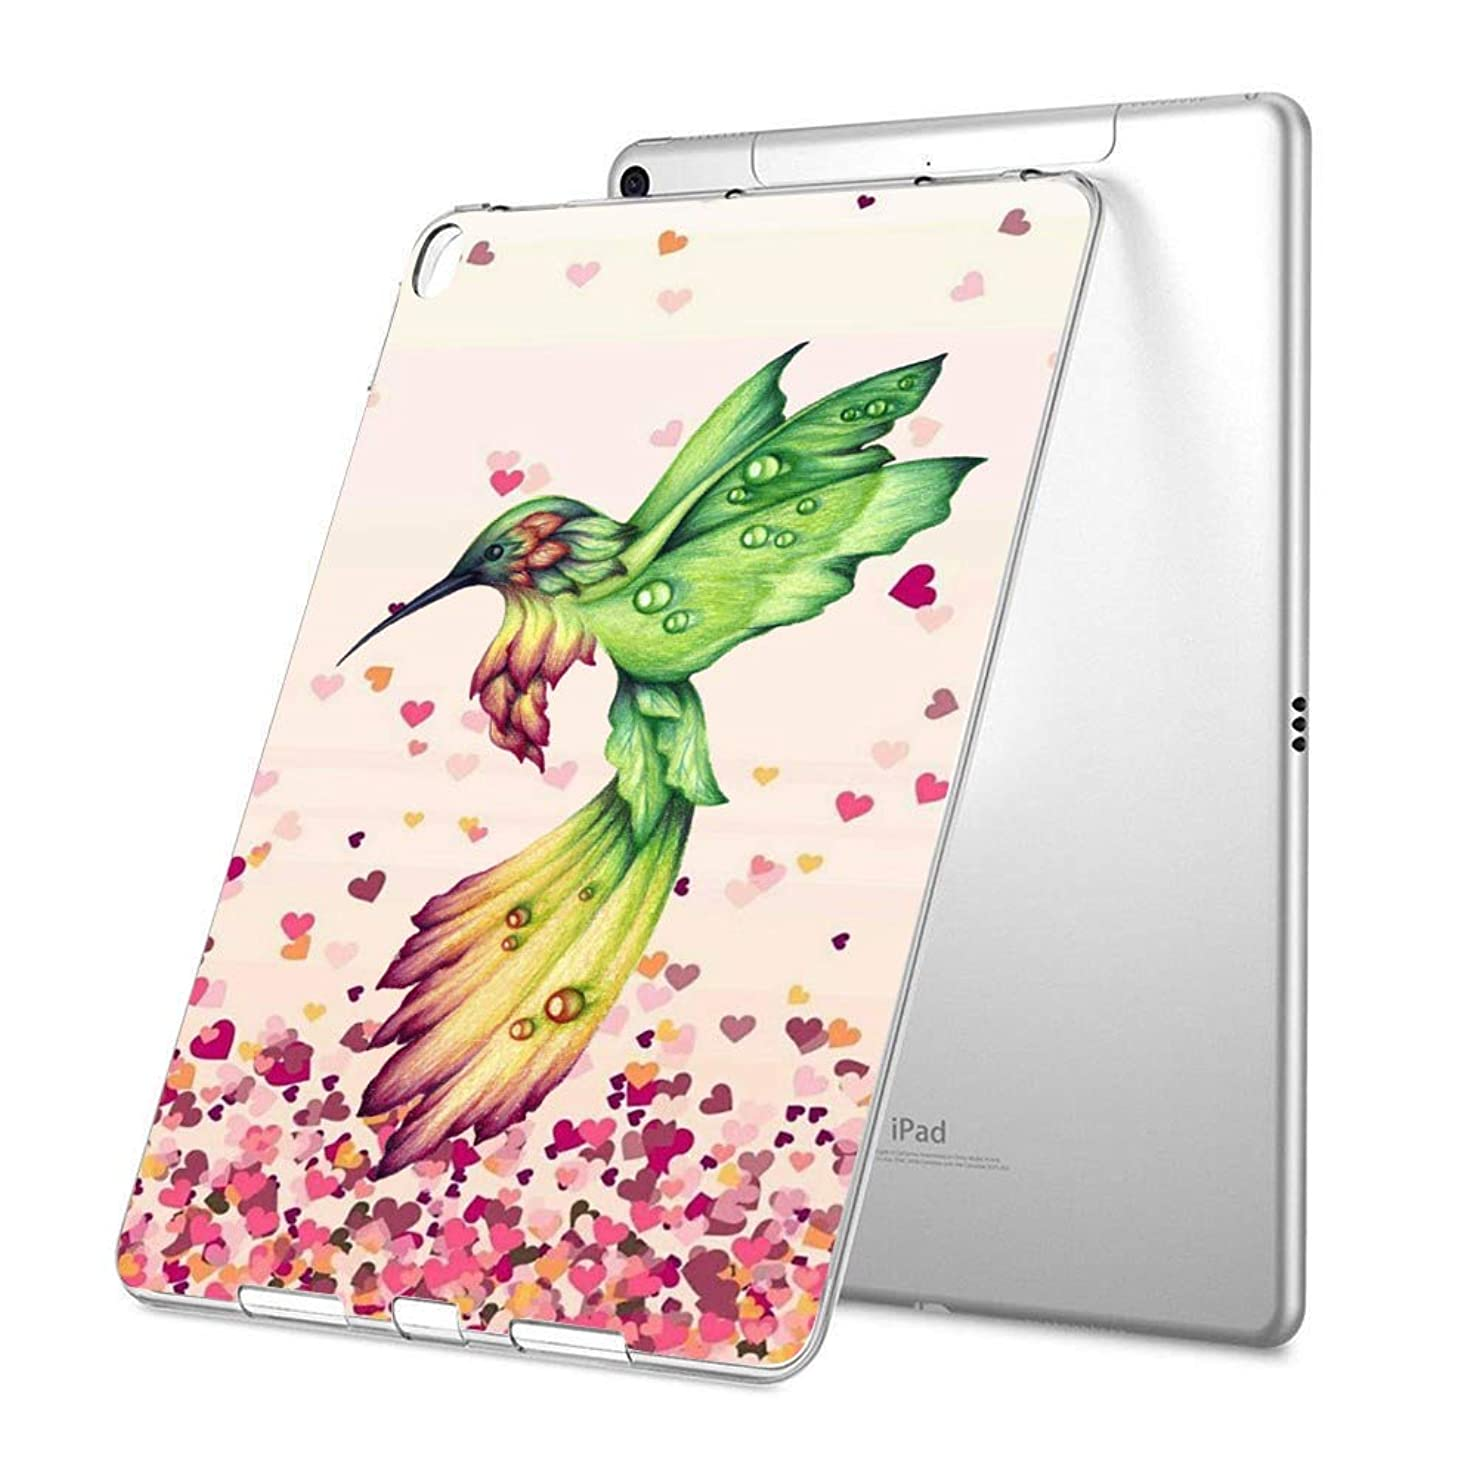 GinHo Customized Protective Cover with Slim Soft Durable TPU Ultra-Clear Silicone UV Printing Case for Hummingbird iPad Pro 9.7 inch 2017